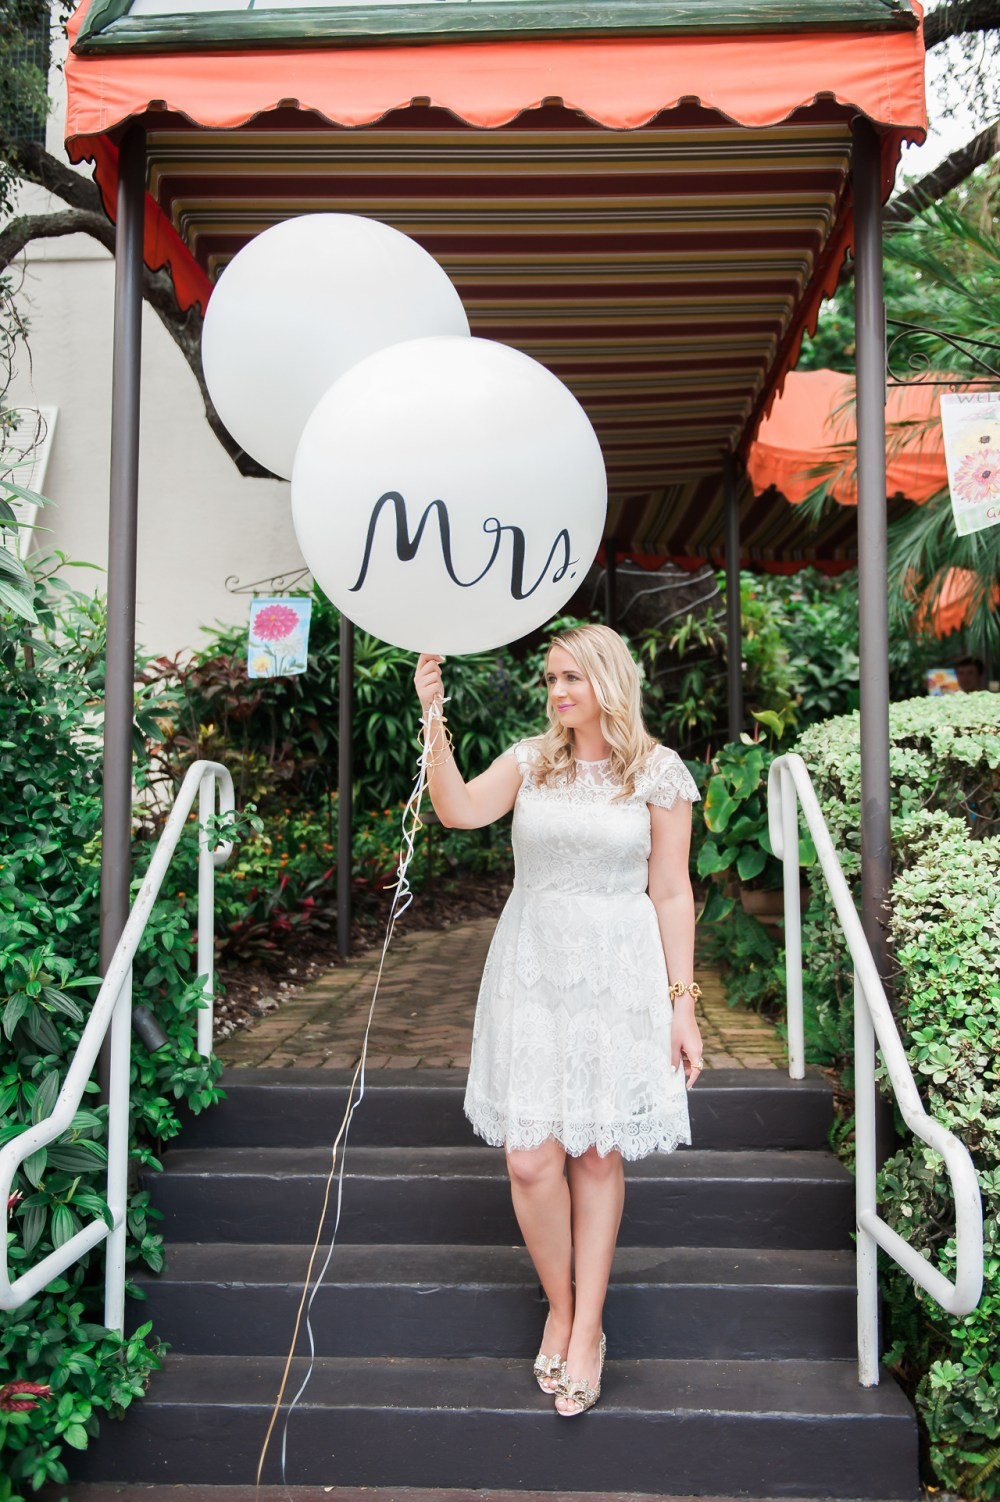 Kate Spade Bridal Shower Mrs. Balloon Fancy Things White Dress